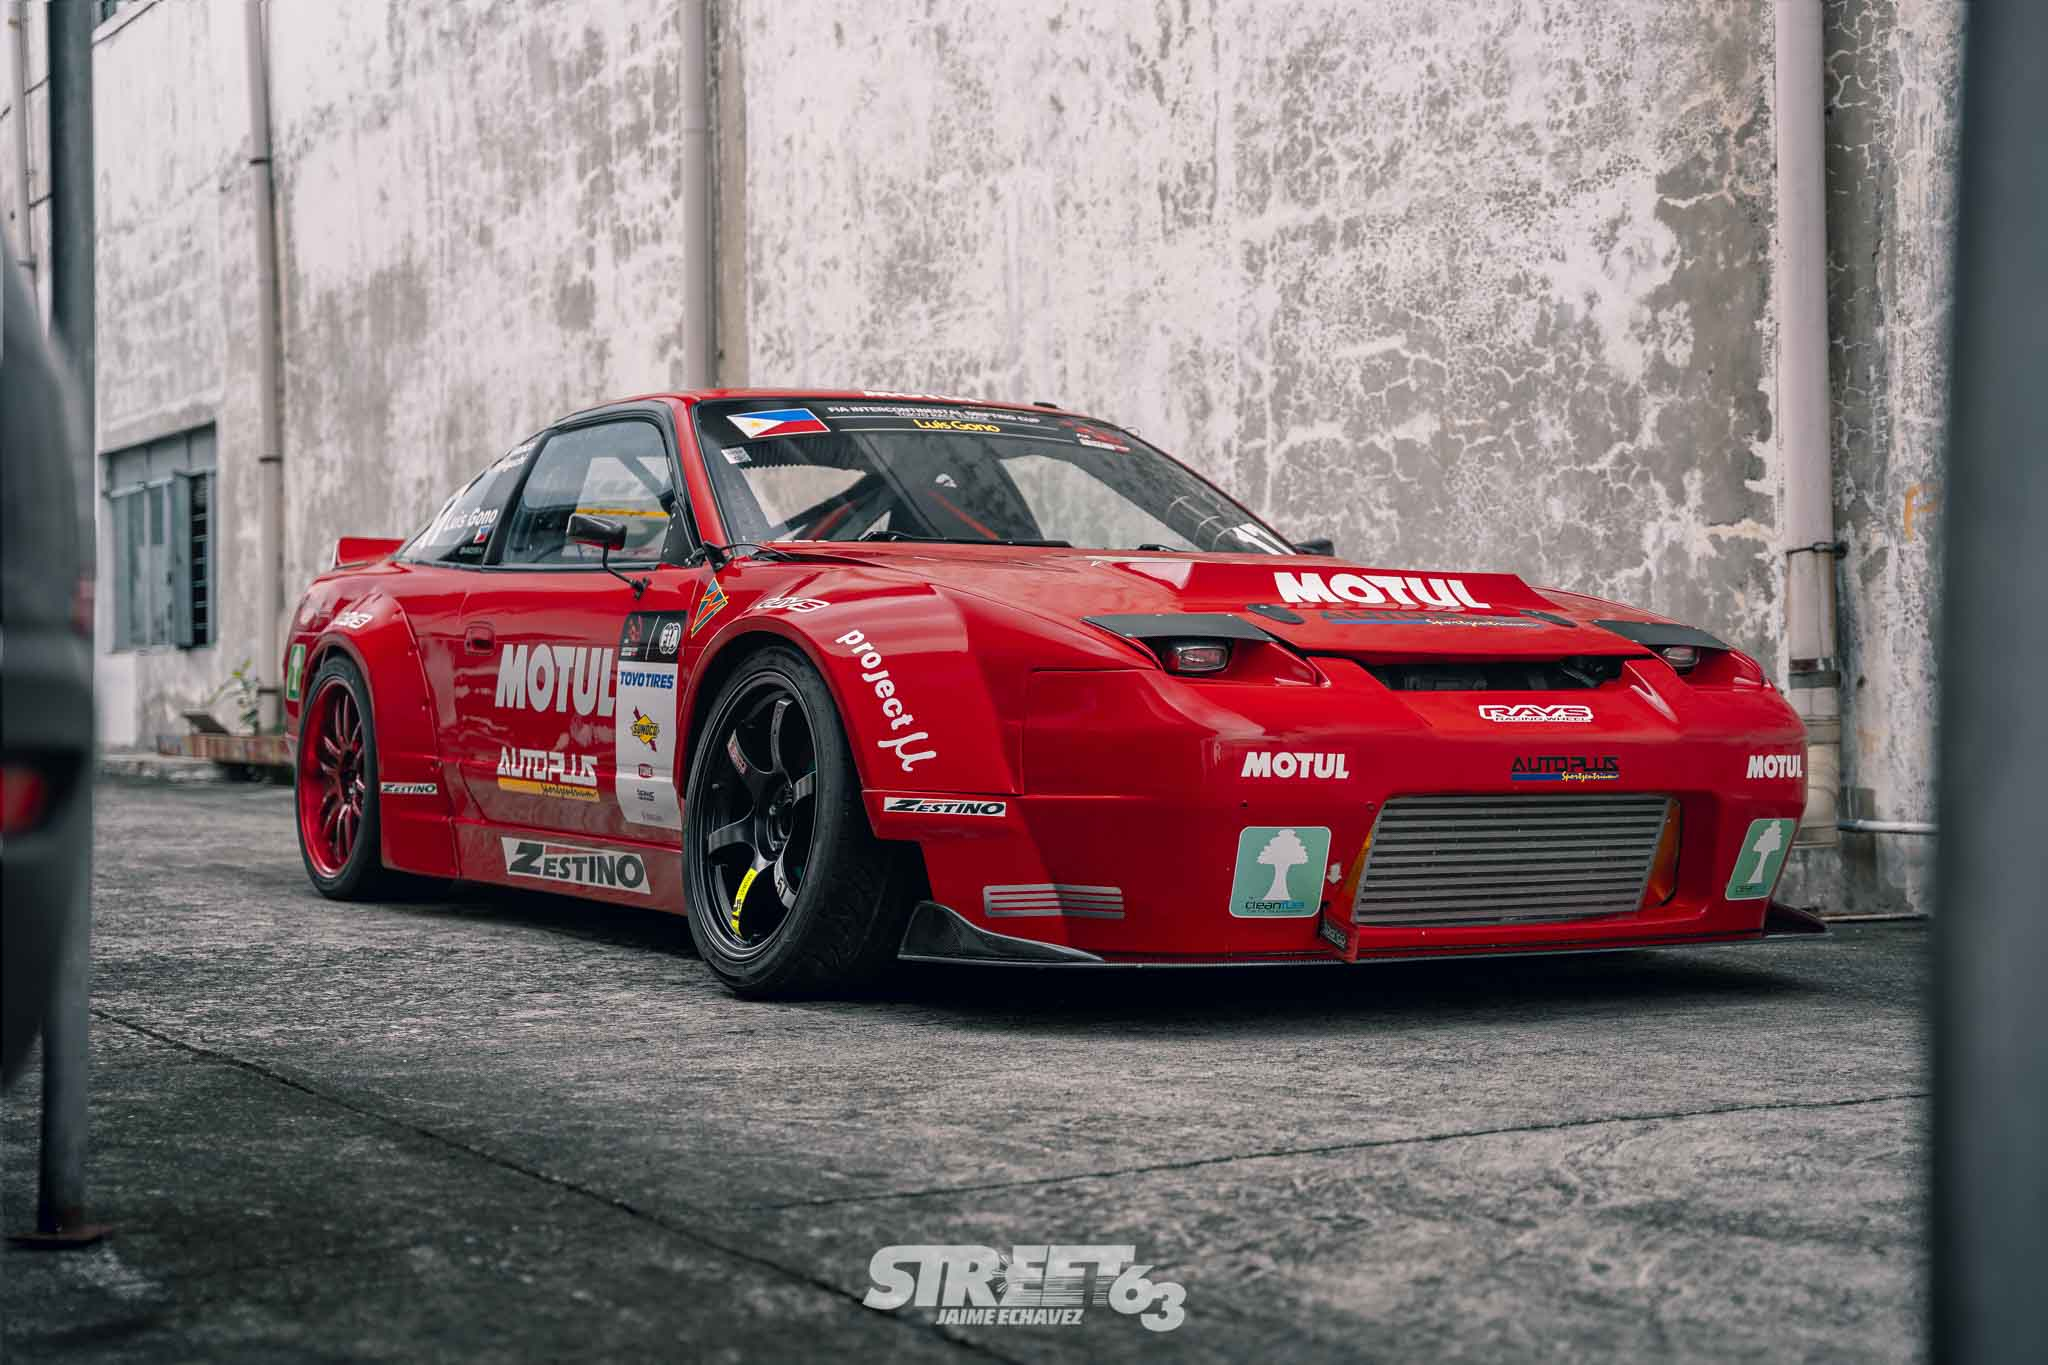 **Sideways Ace:** The Motul Autoplus 240SX